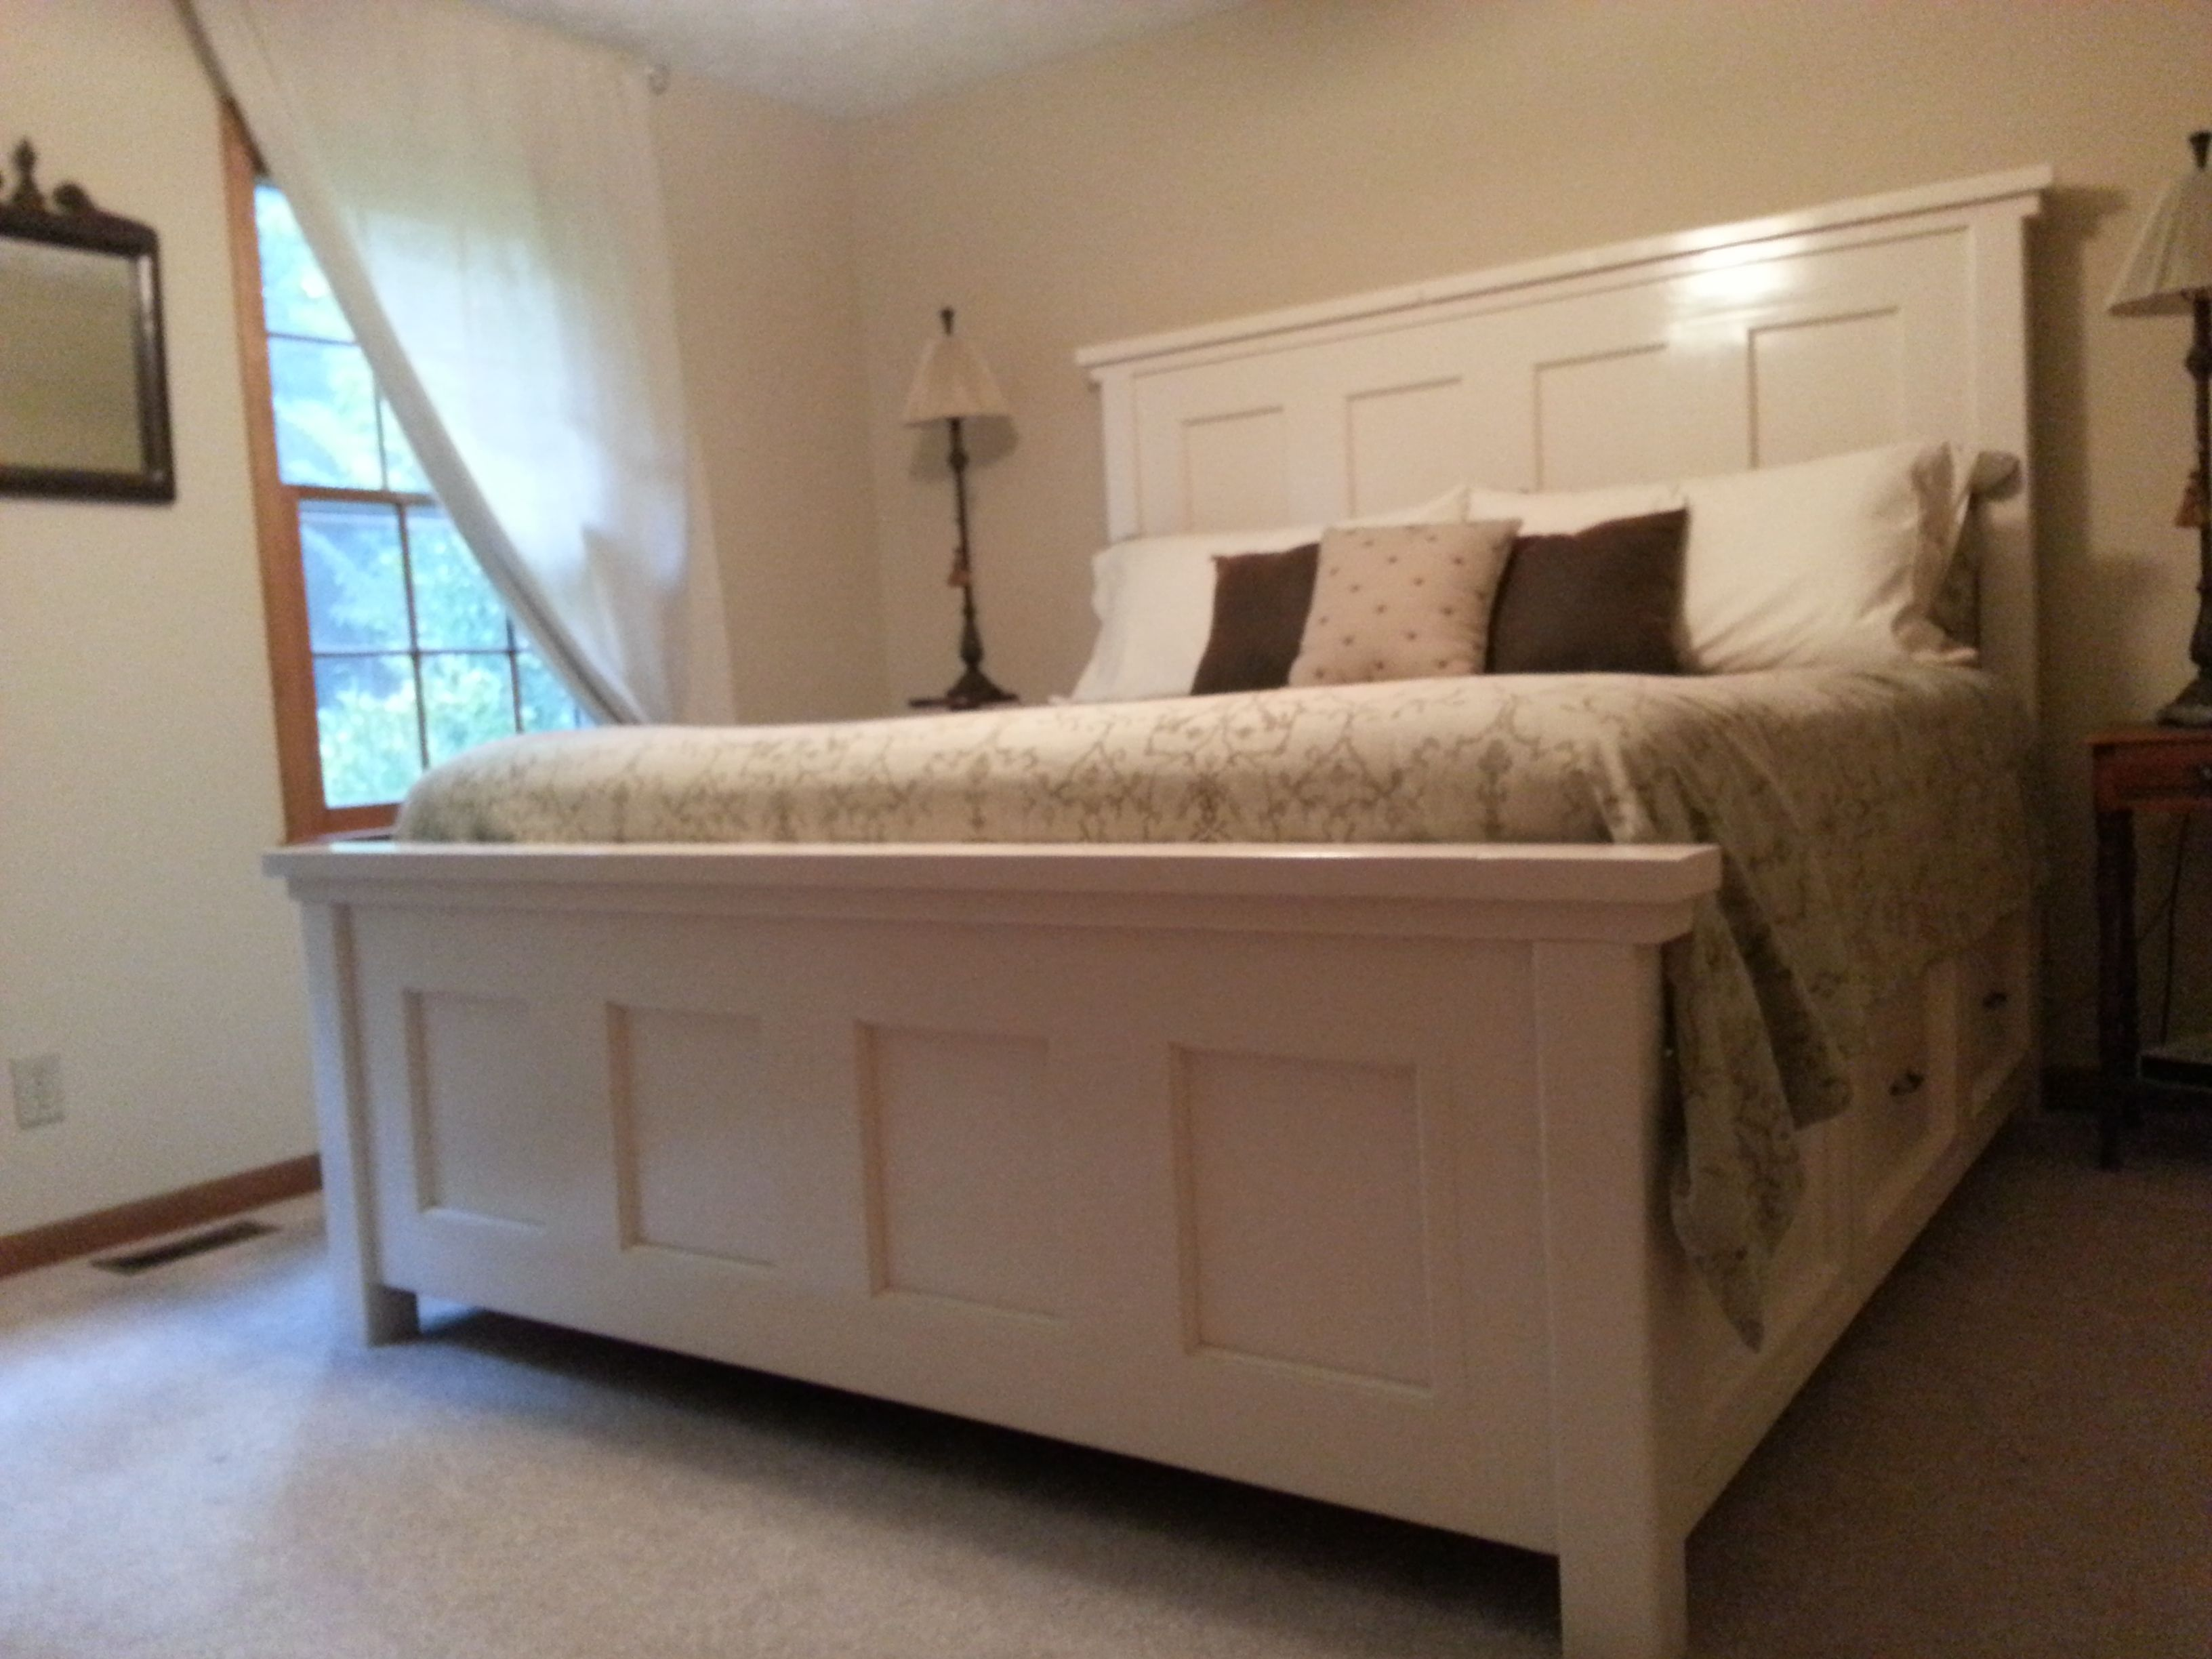 King Farm House Bed Do It Yourself Home Projects from